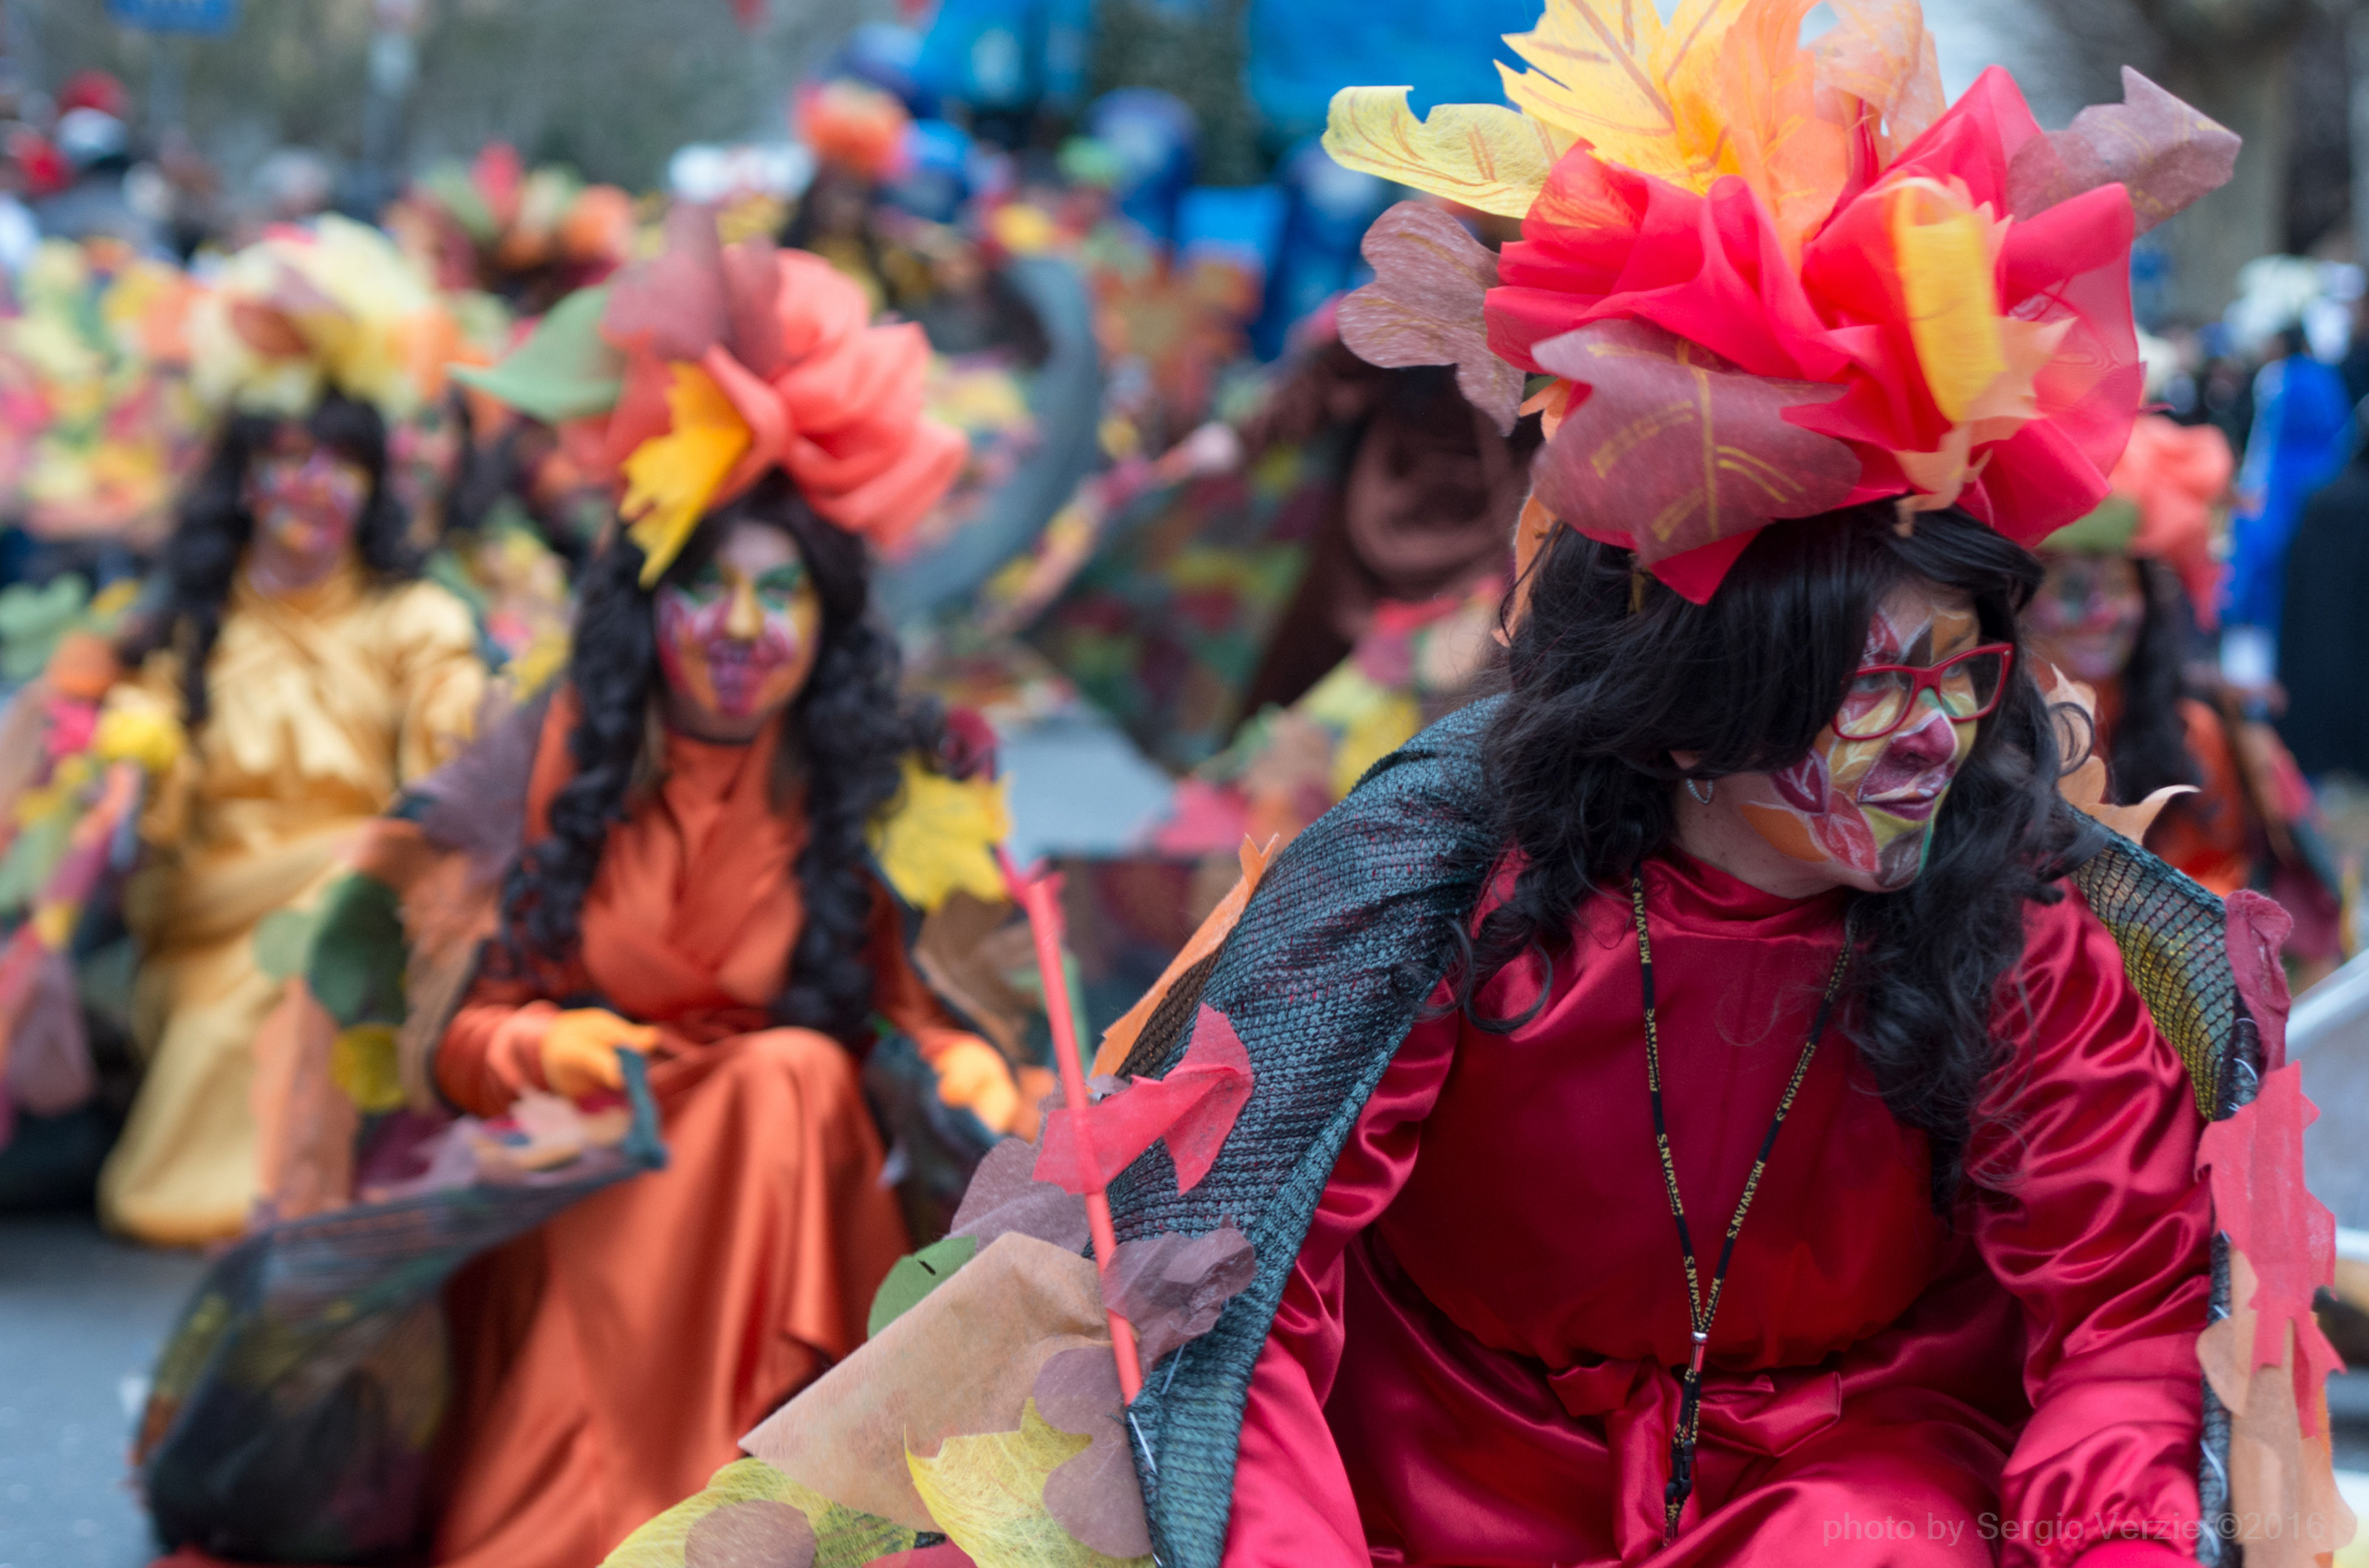 focus on foreground, flower, lifestyles, person, leisure activity, traditional clothing, men, celebration, cultures, large group of people, multi colored, tradition, day, close-up, red, incidental people, outdoors, costume, religion